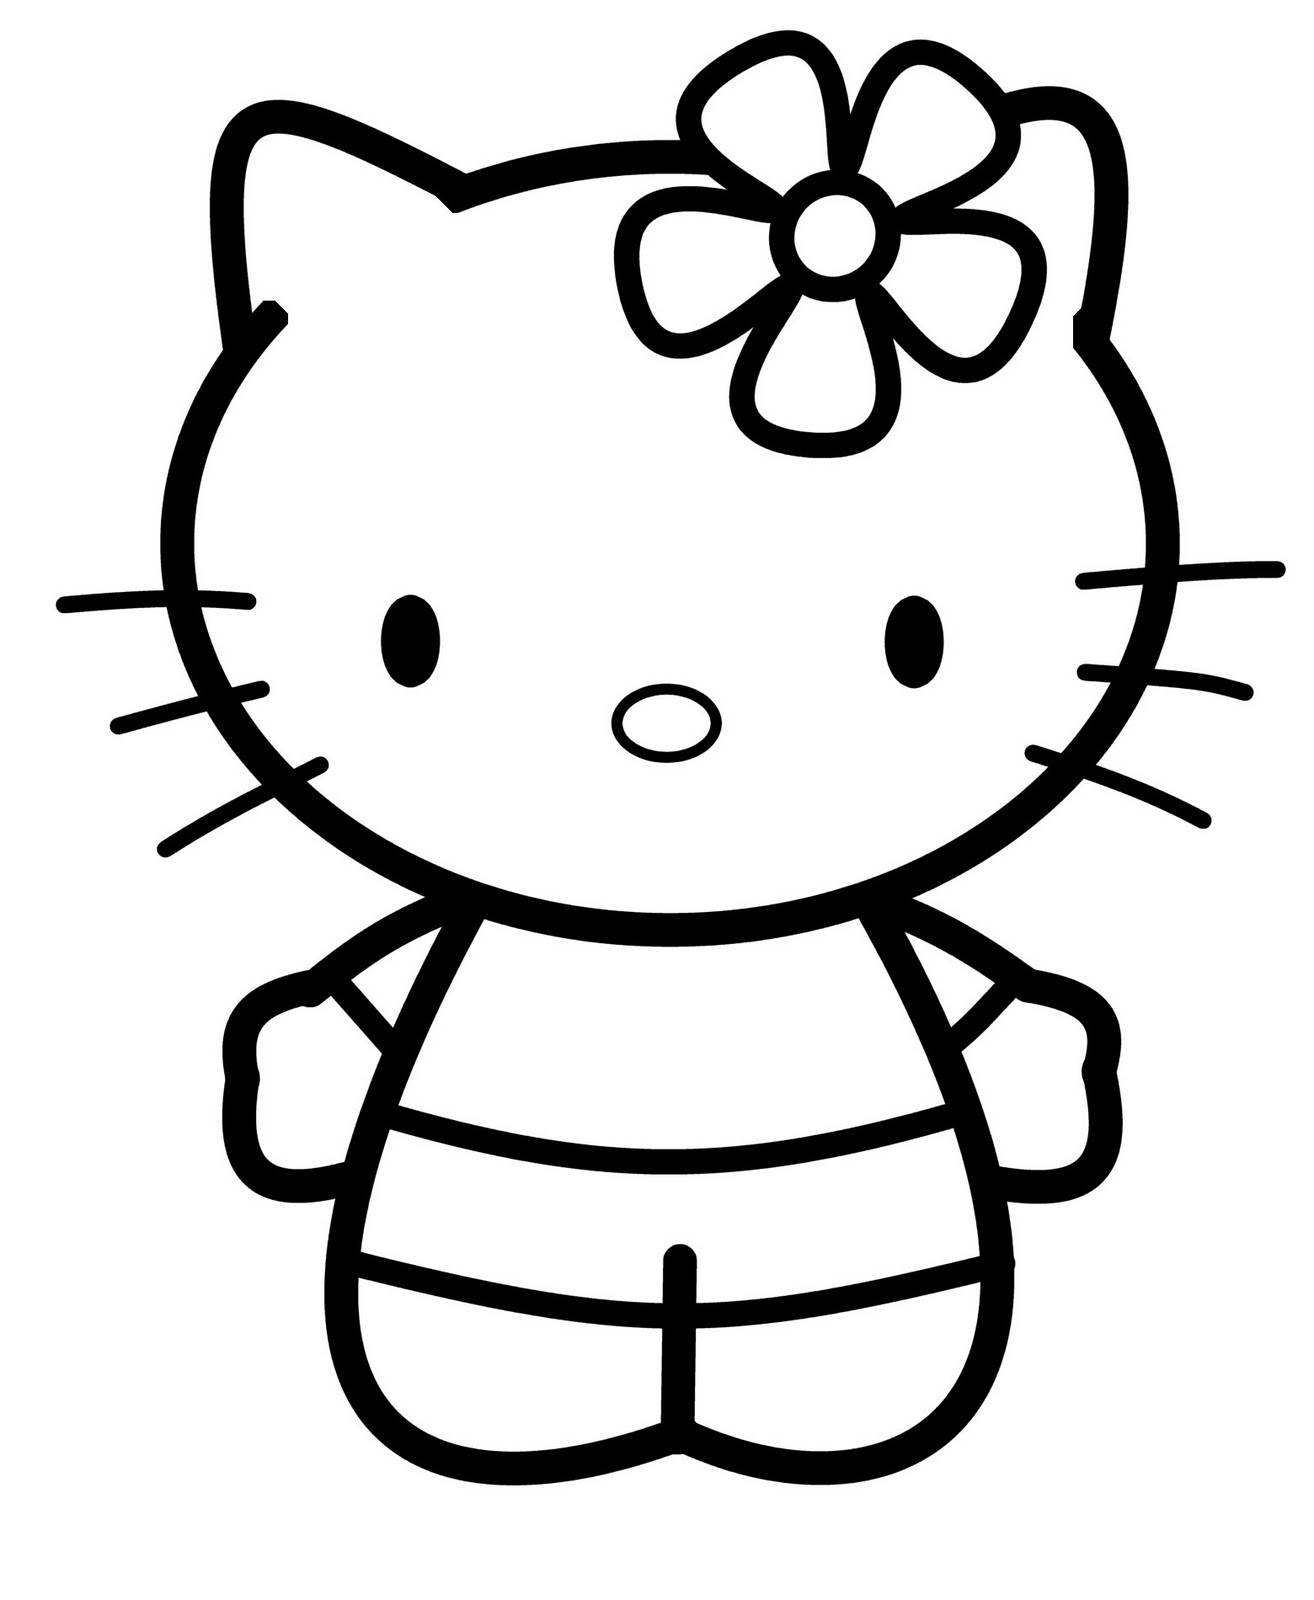 hellokitty drawing hello kitty face drawing at paintingvalleycom explore drawing hellokitty